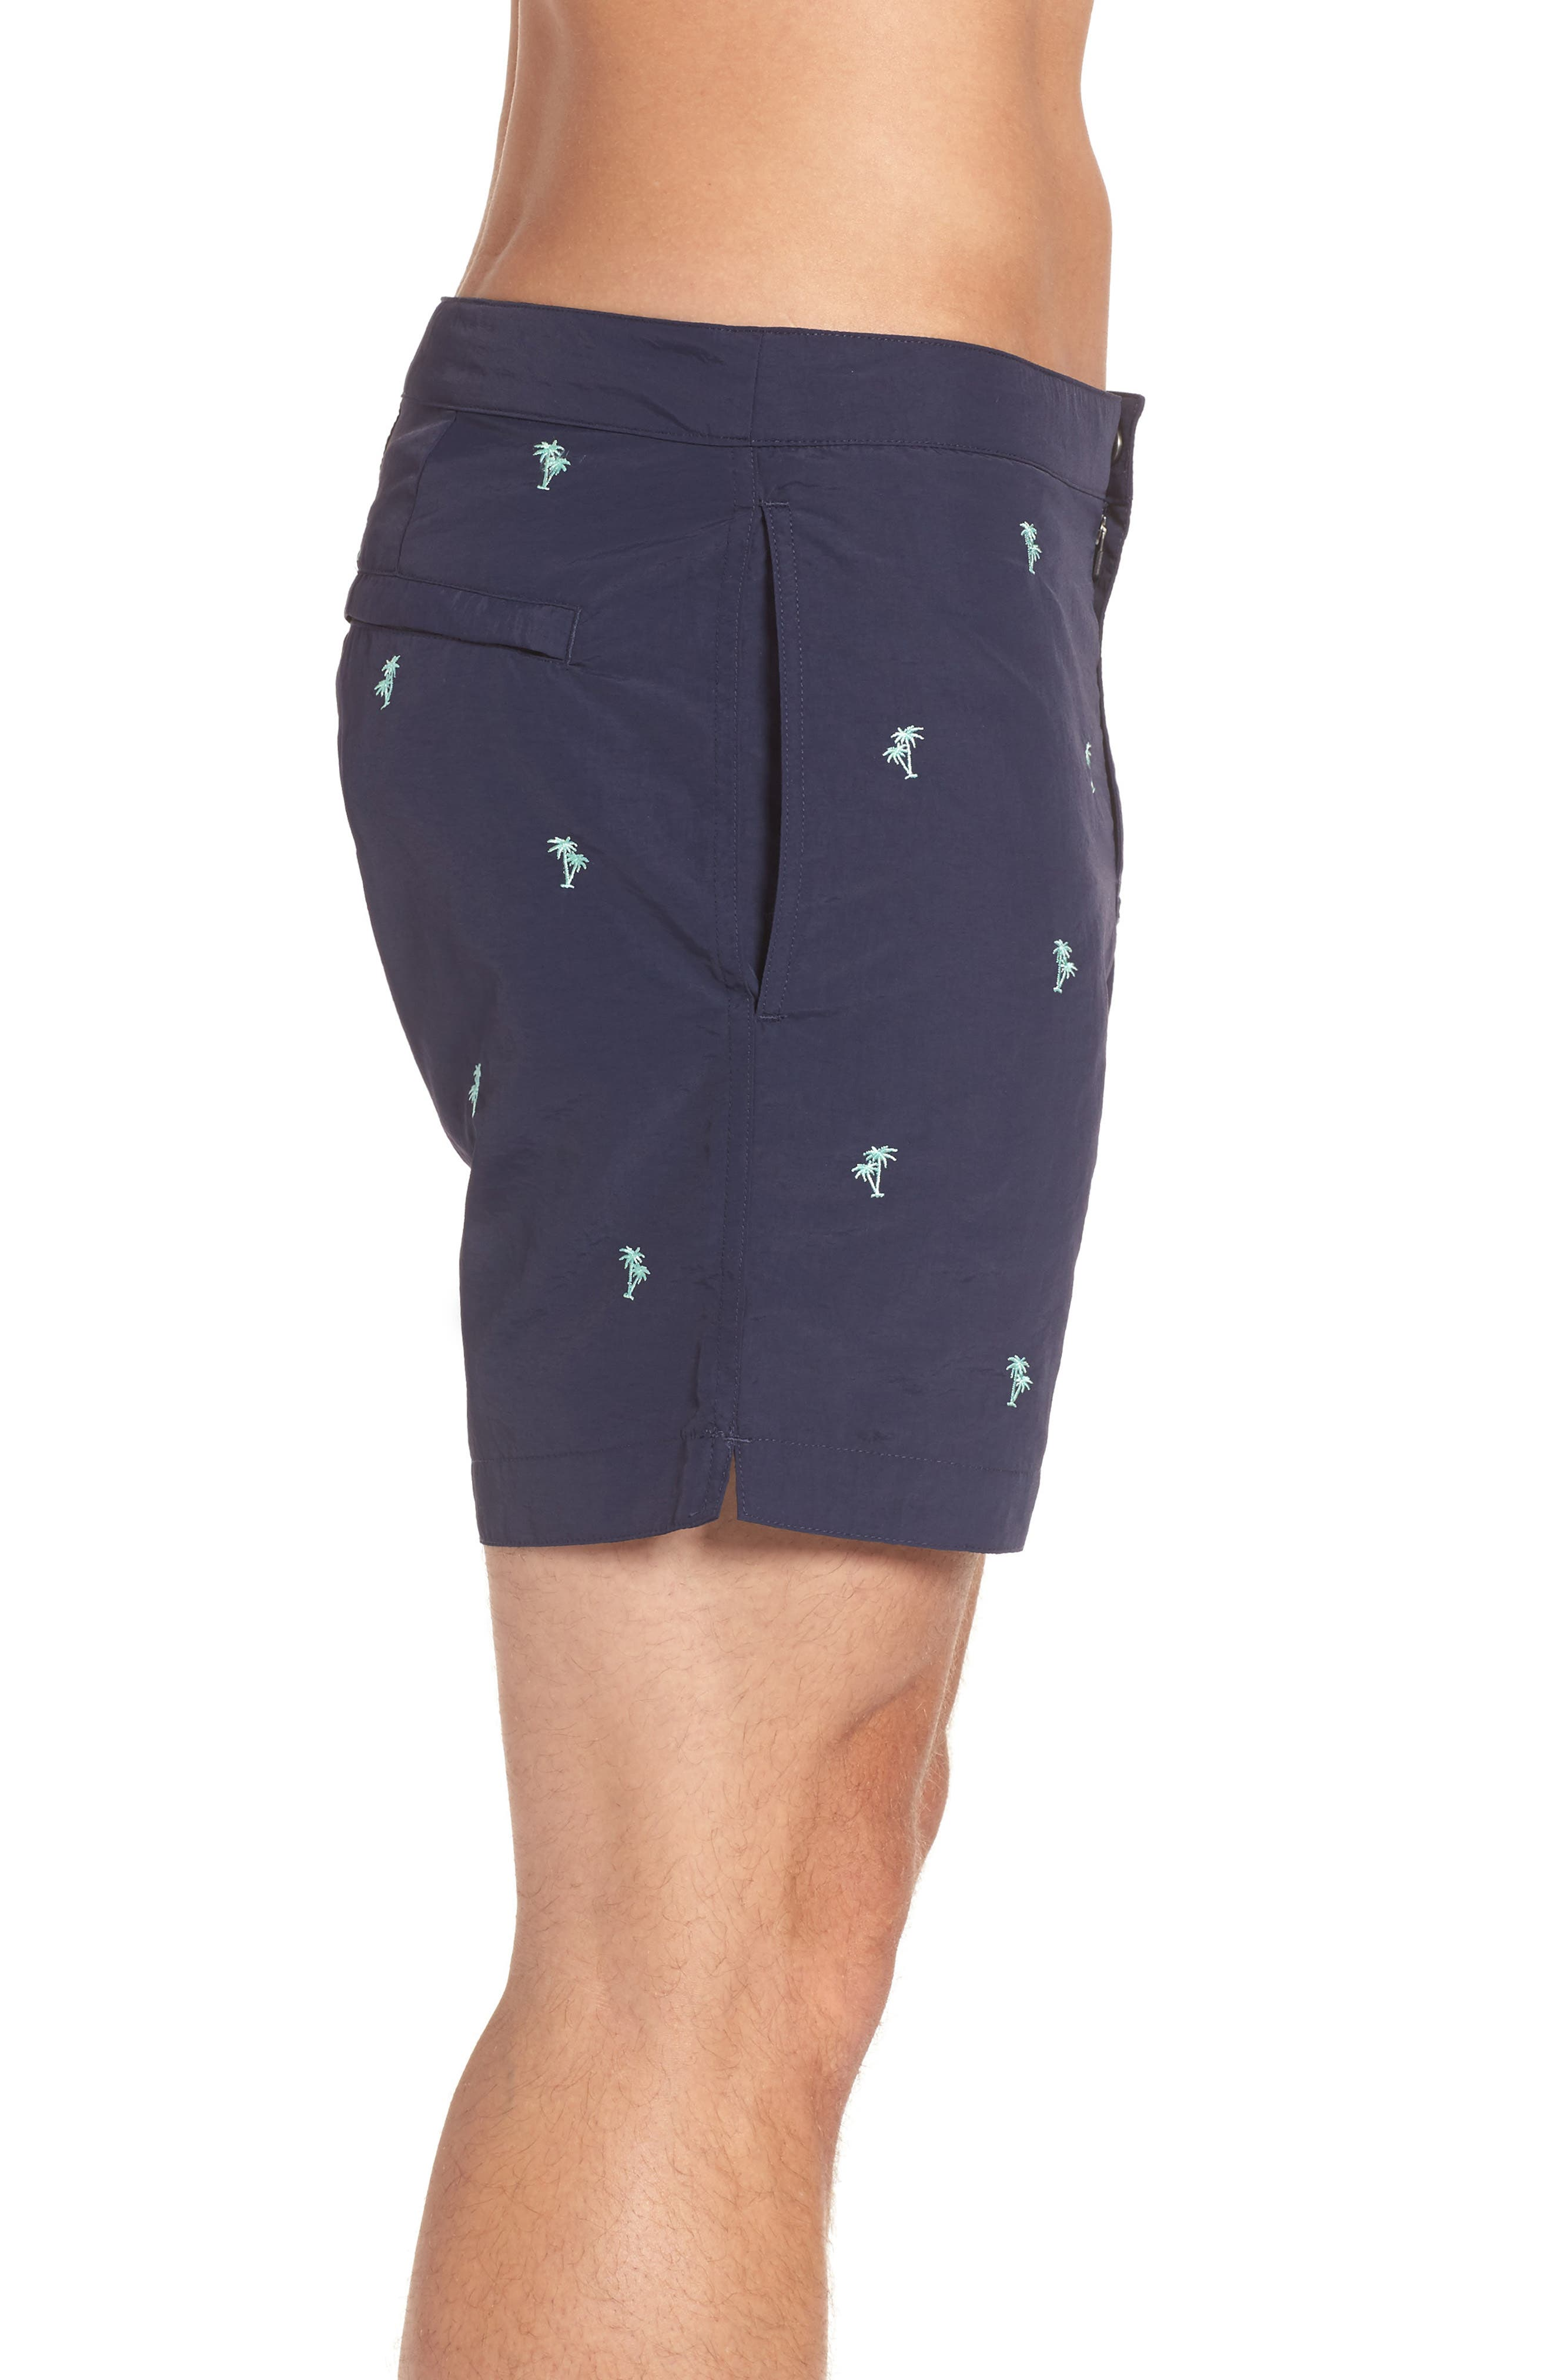 Aruba Tailored Fit Embroidered Palm Swim Trunks,                             Alternate thumbnail 3, color,                             Navy Emb Palm Trees